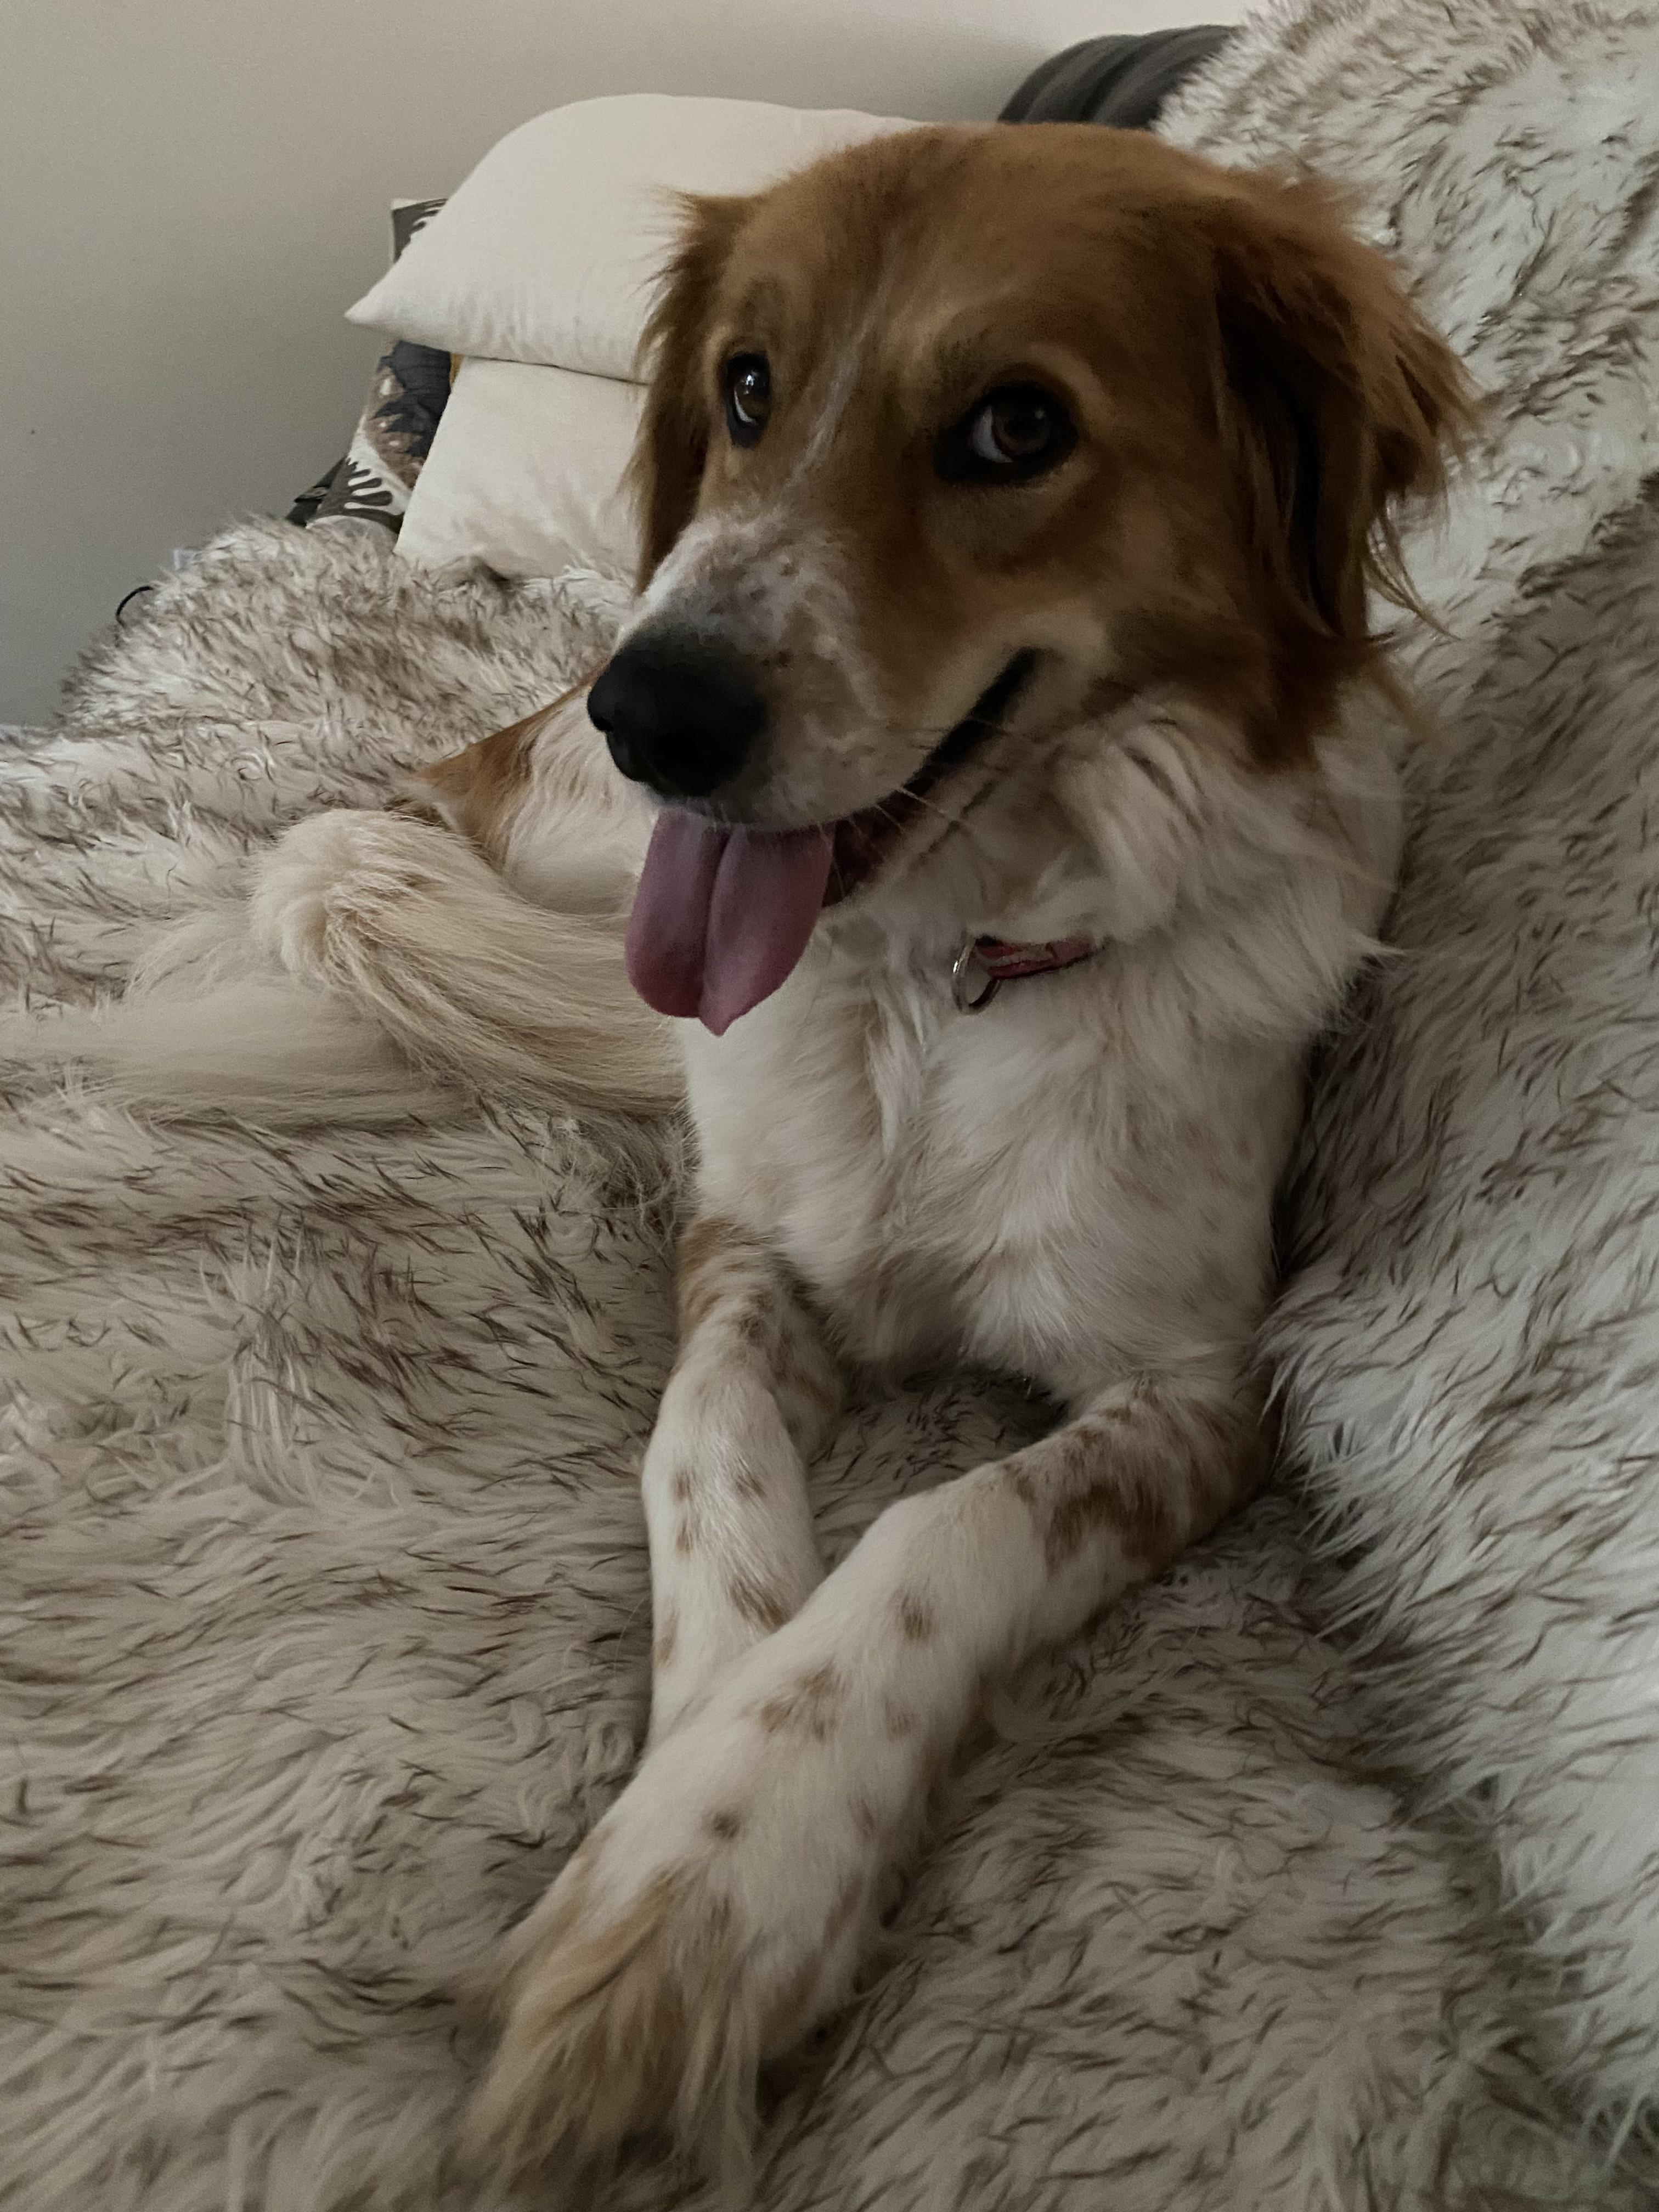 Hi! I'm punkin. Mom wants to know what breed I am